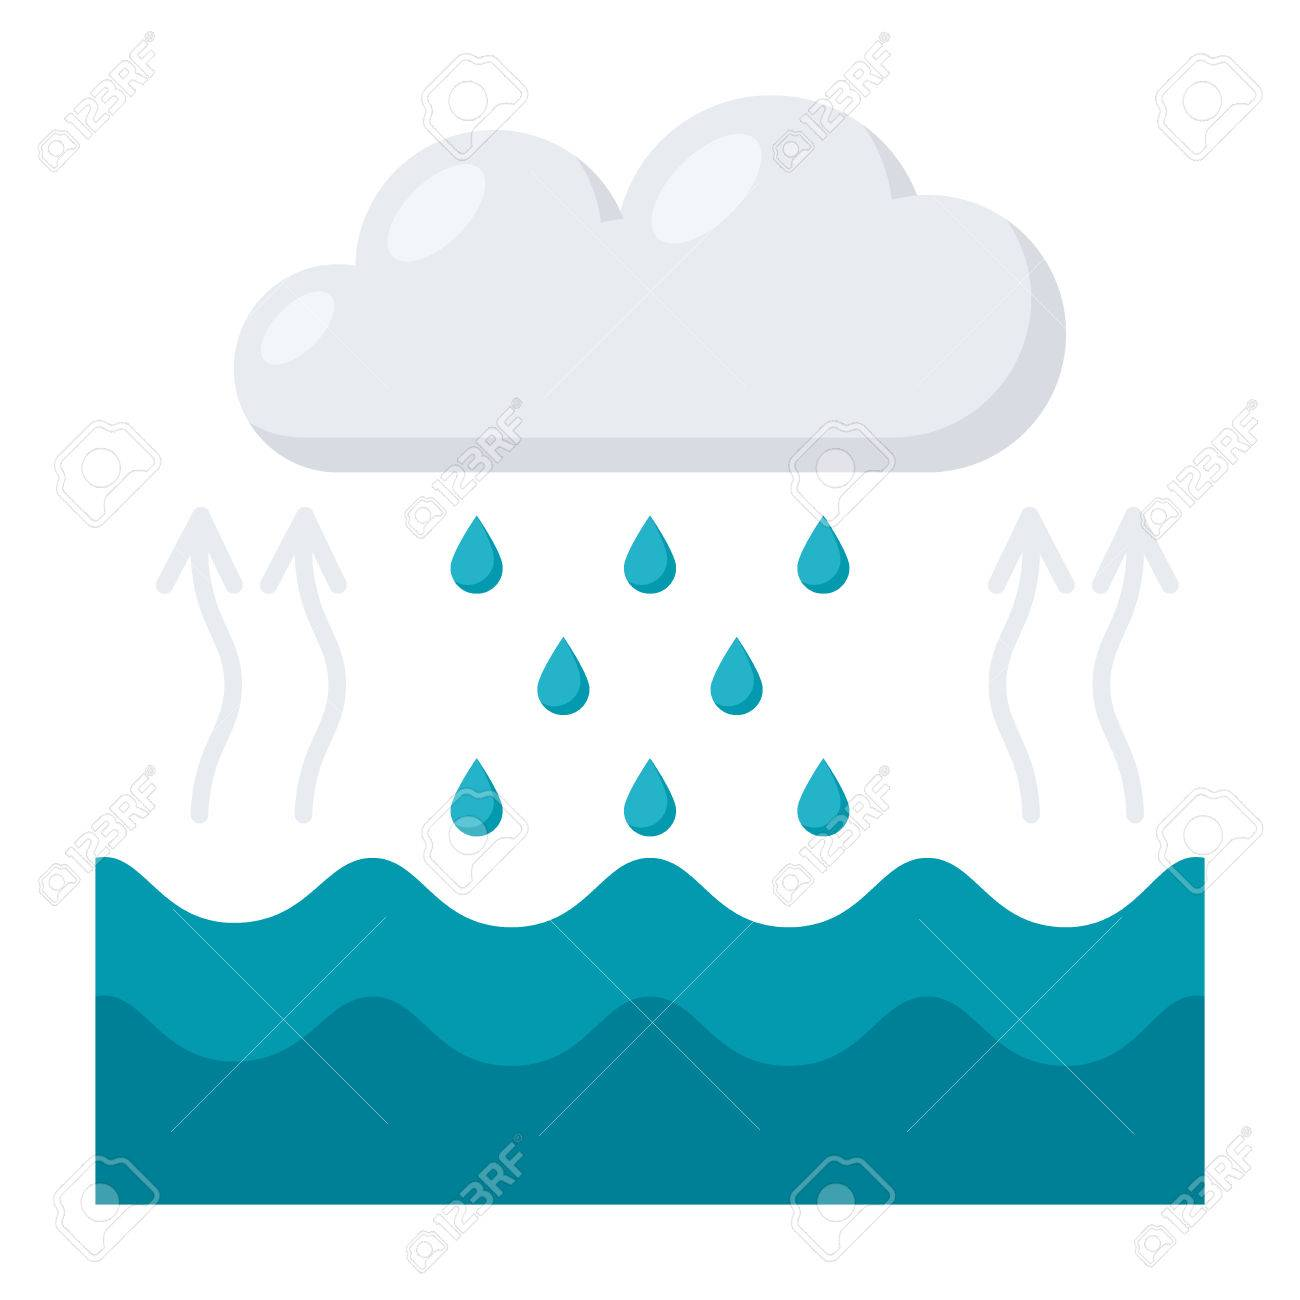 Water cycle diagram royalty free cliparts vectors and stock vector water cycle diagram ccuart Images